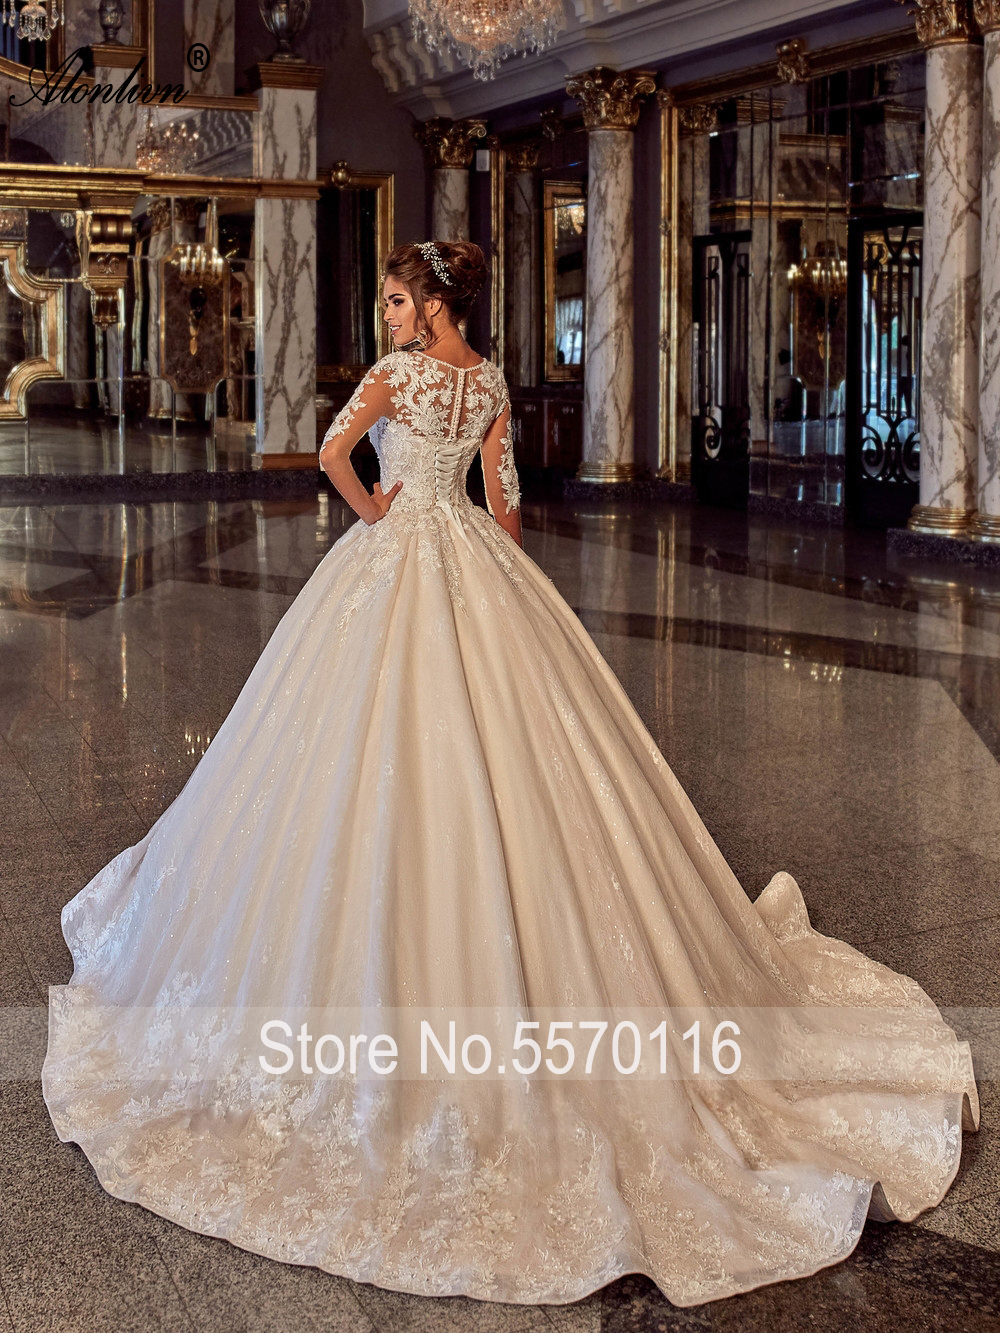 Alonlivn Delicate Shiny Beading O-Neck Wedding Dress Half Sleeves Lace Up Puffy Ball Gown Bride Skirts